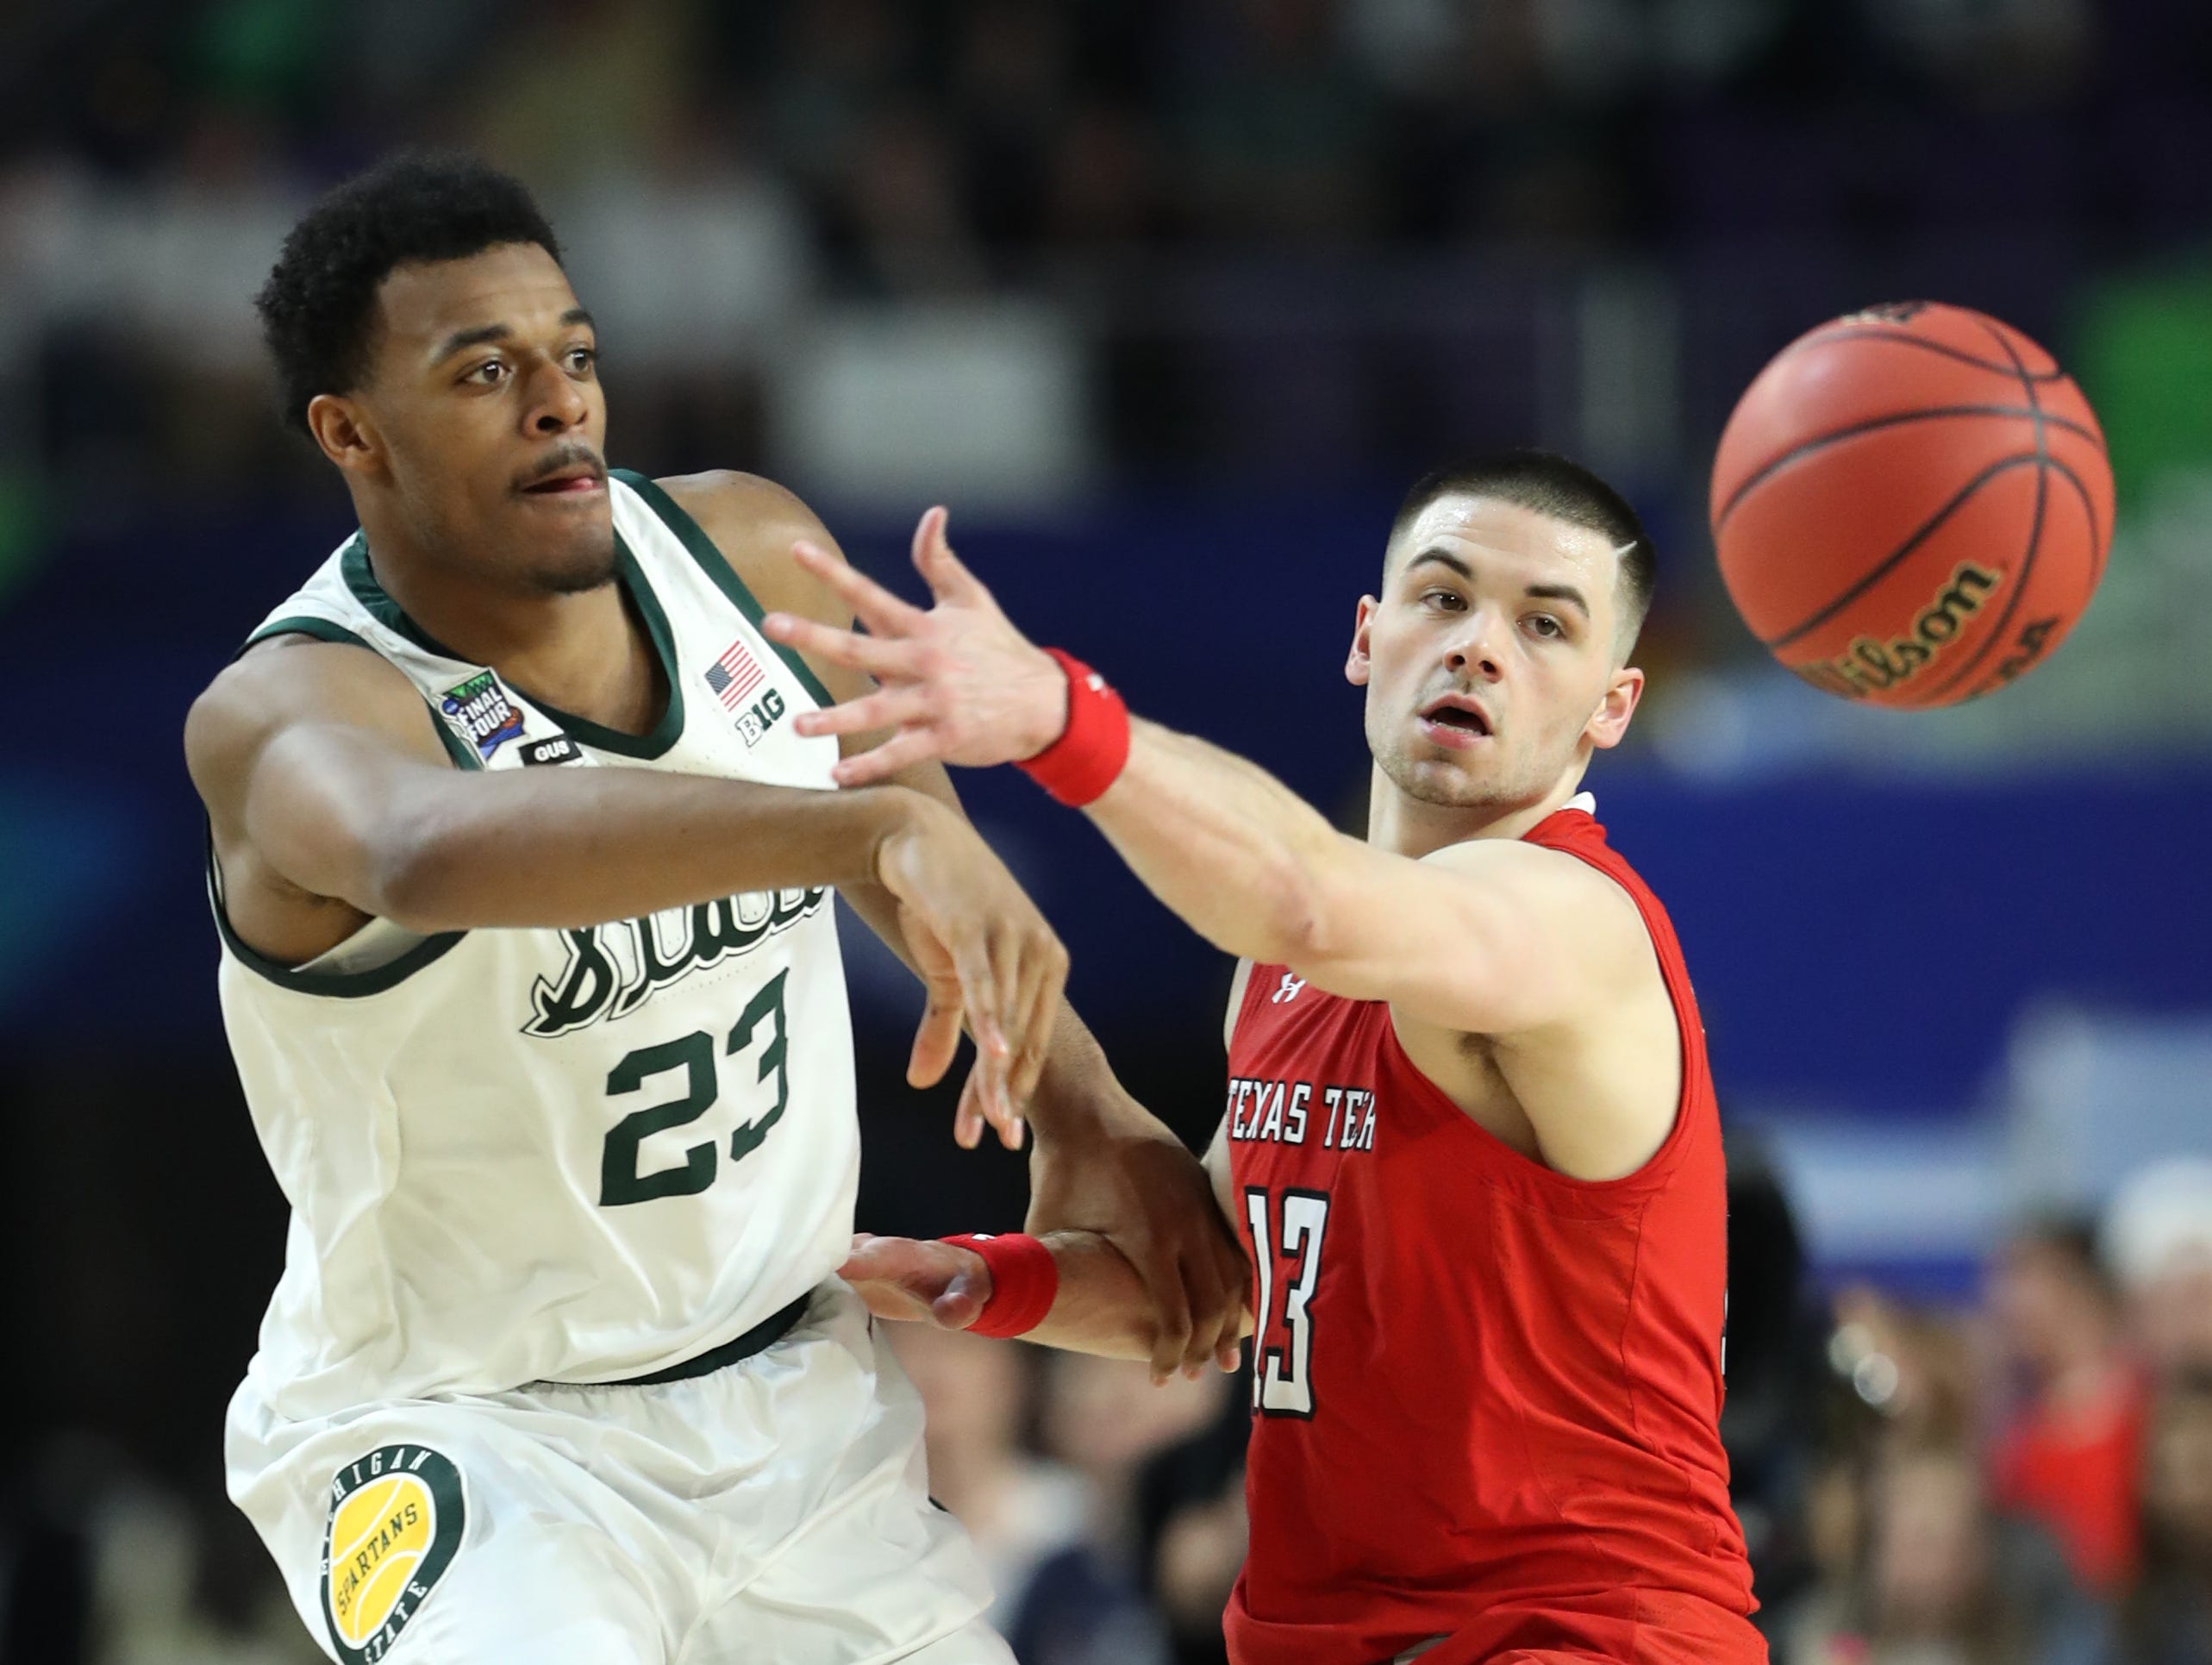 Michigan State forward Xavier Tillman (23) passes the ball around guard Matt Mooney (13) during the first half of the Spartan's Final Four game at U.S. Bank Stadium in Minneapolis, Minnesota on Saturday, April 06, 2019.